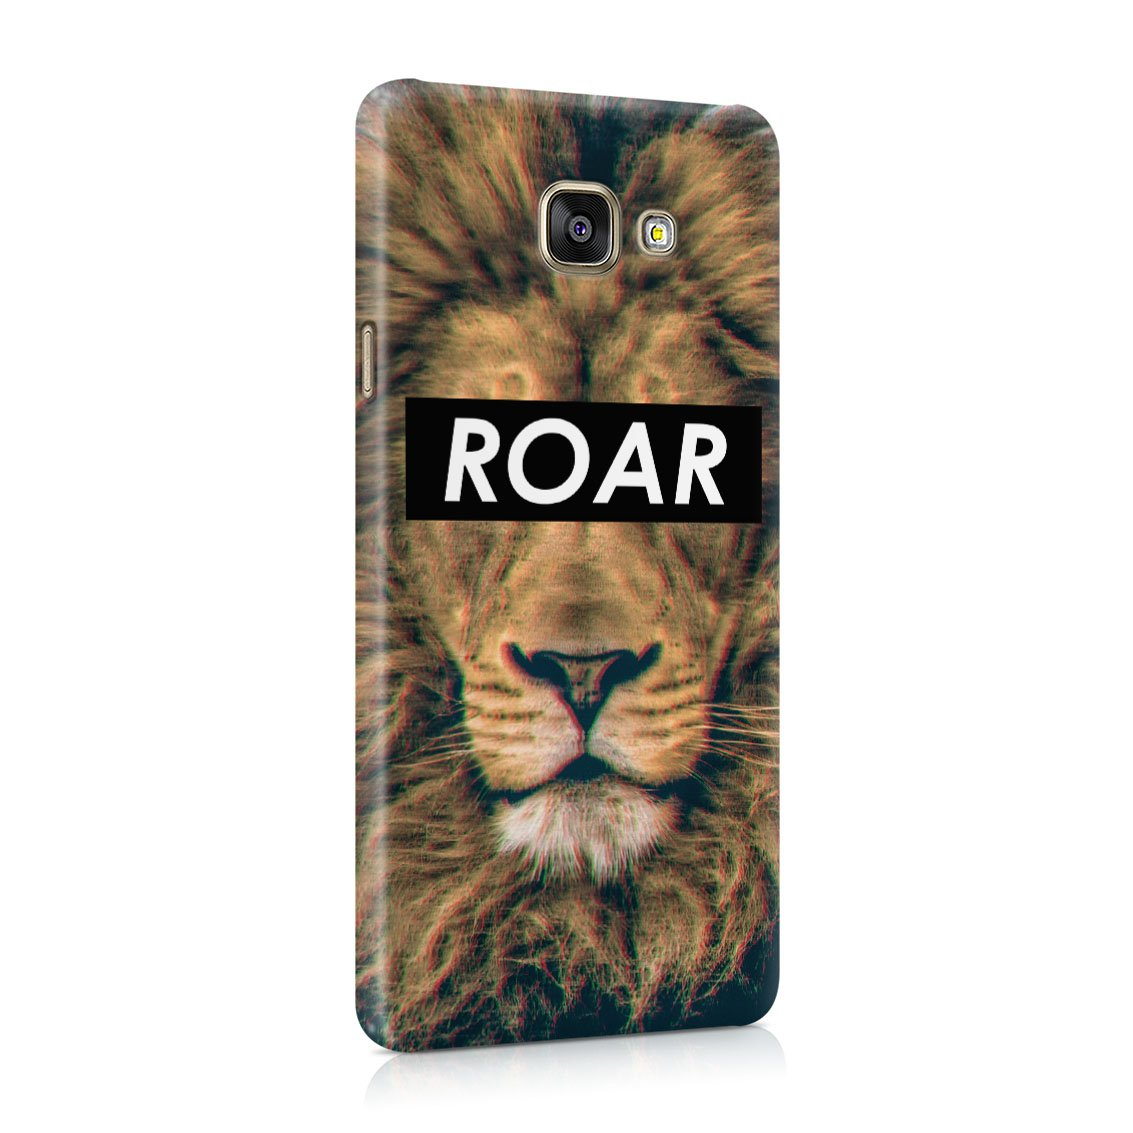 samsung a5 lion king case